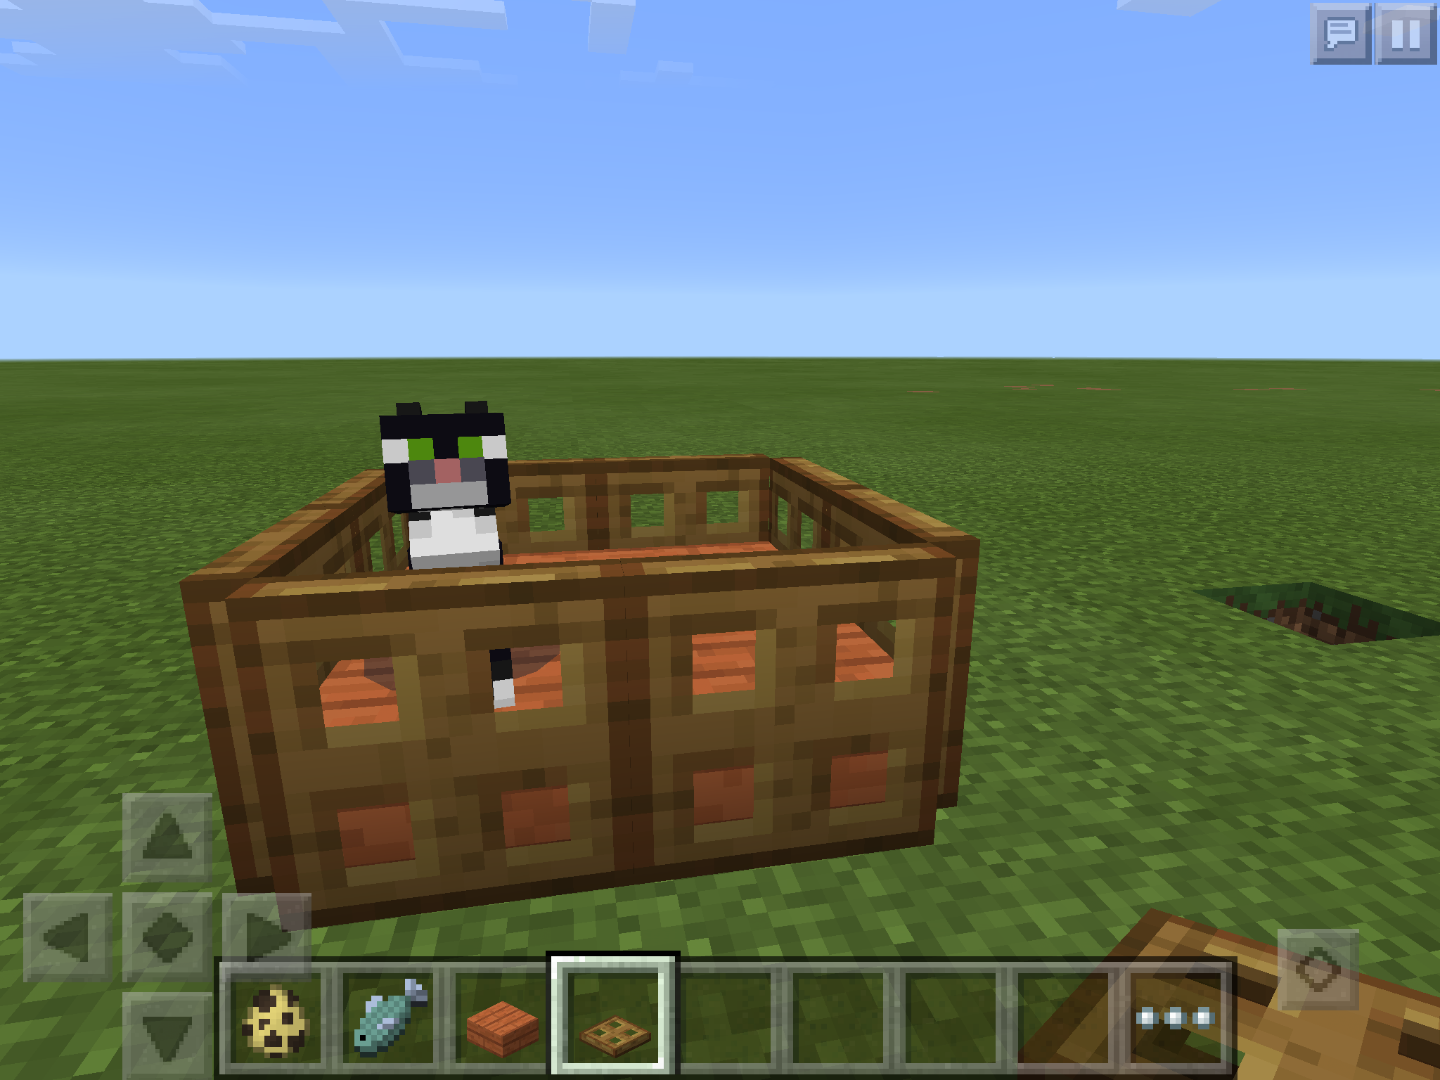 How To Make A Pet Bed In Minecraft Pe 0 13 0 5 Steps Instructables